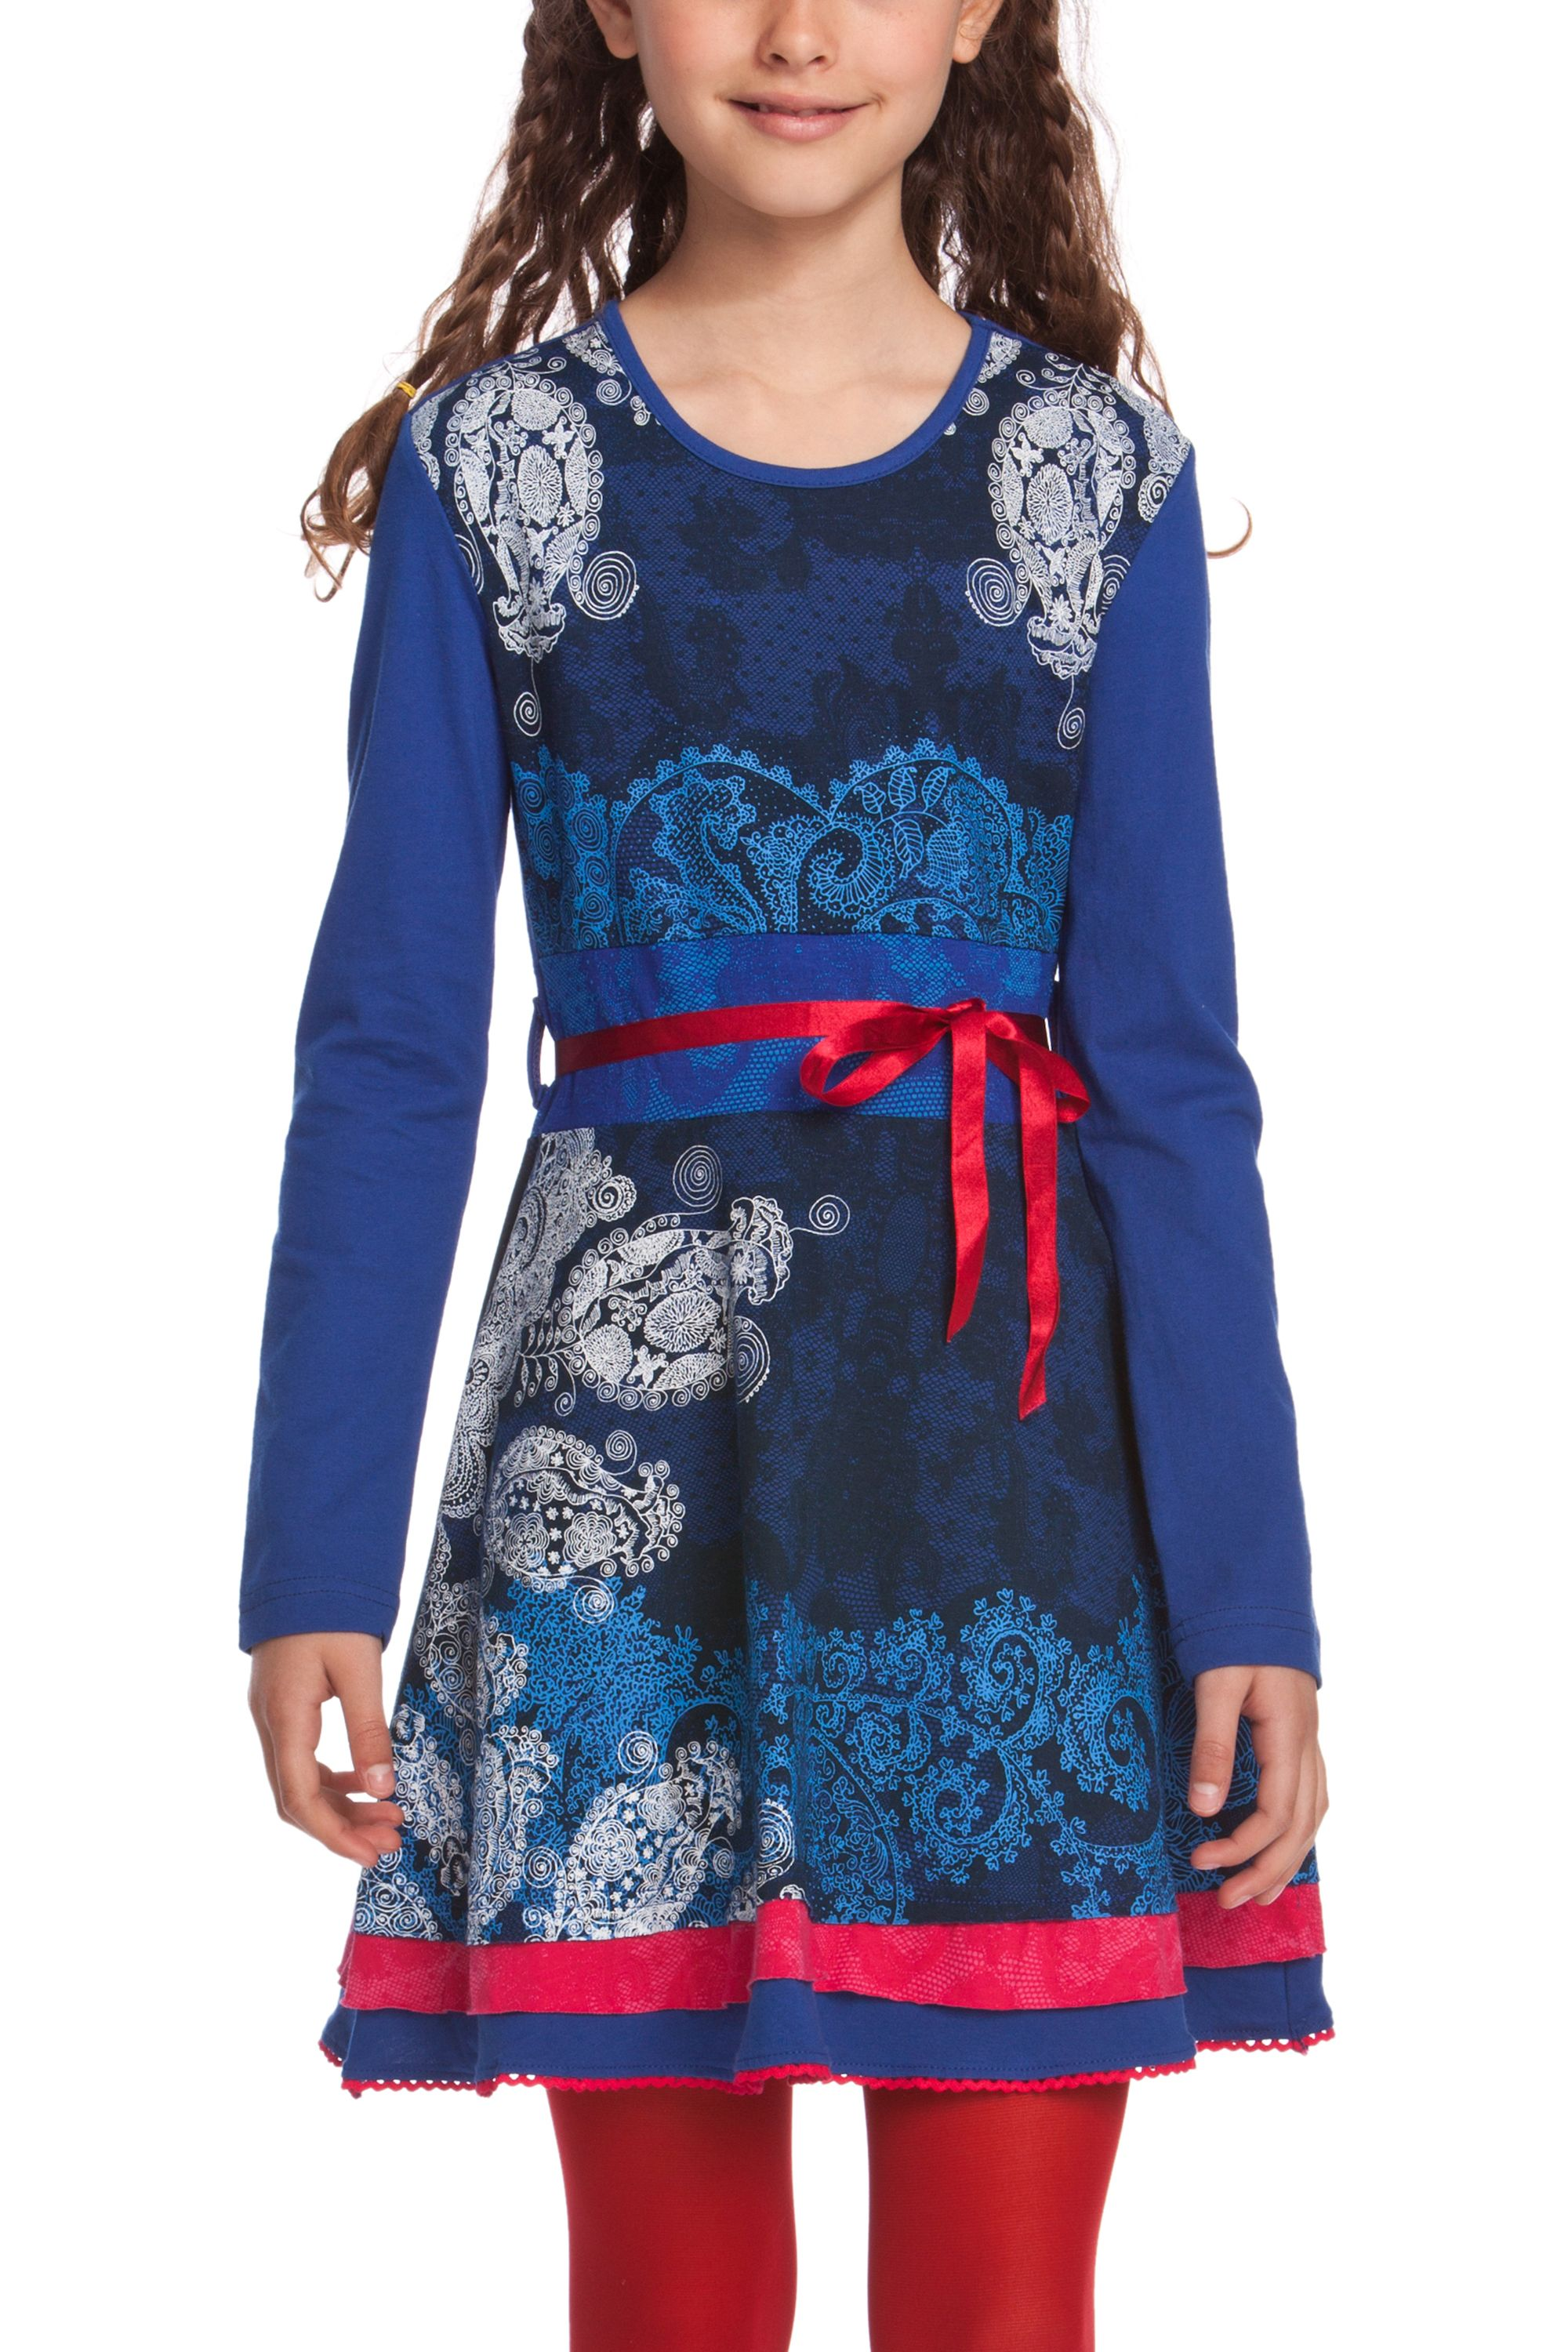 Girls aceite dress